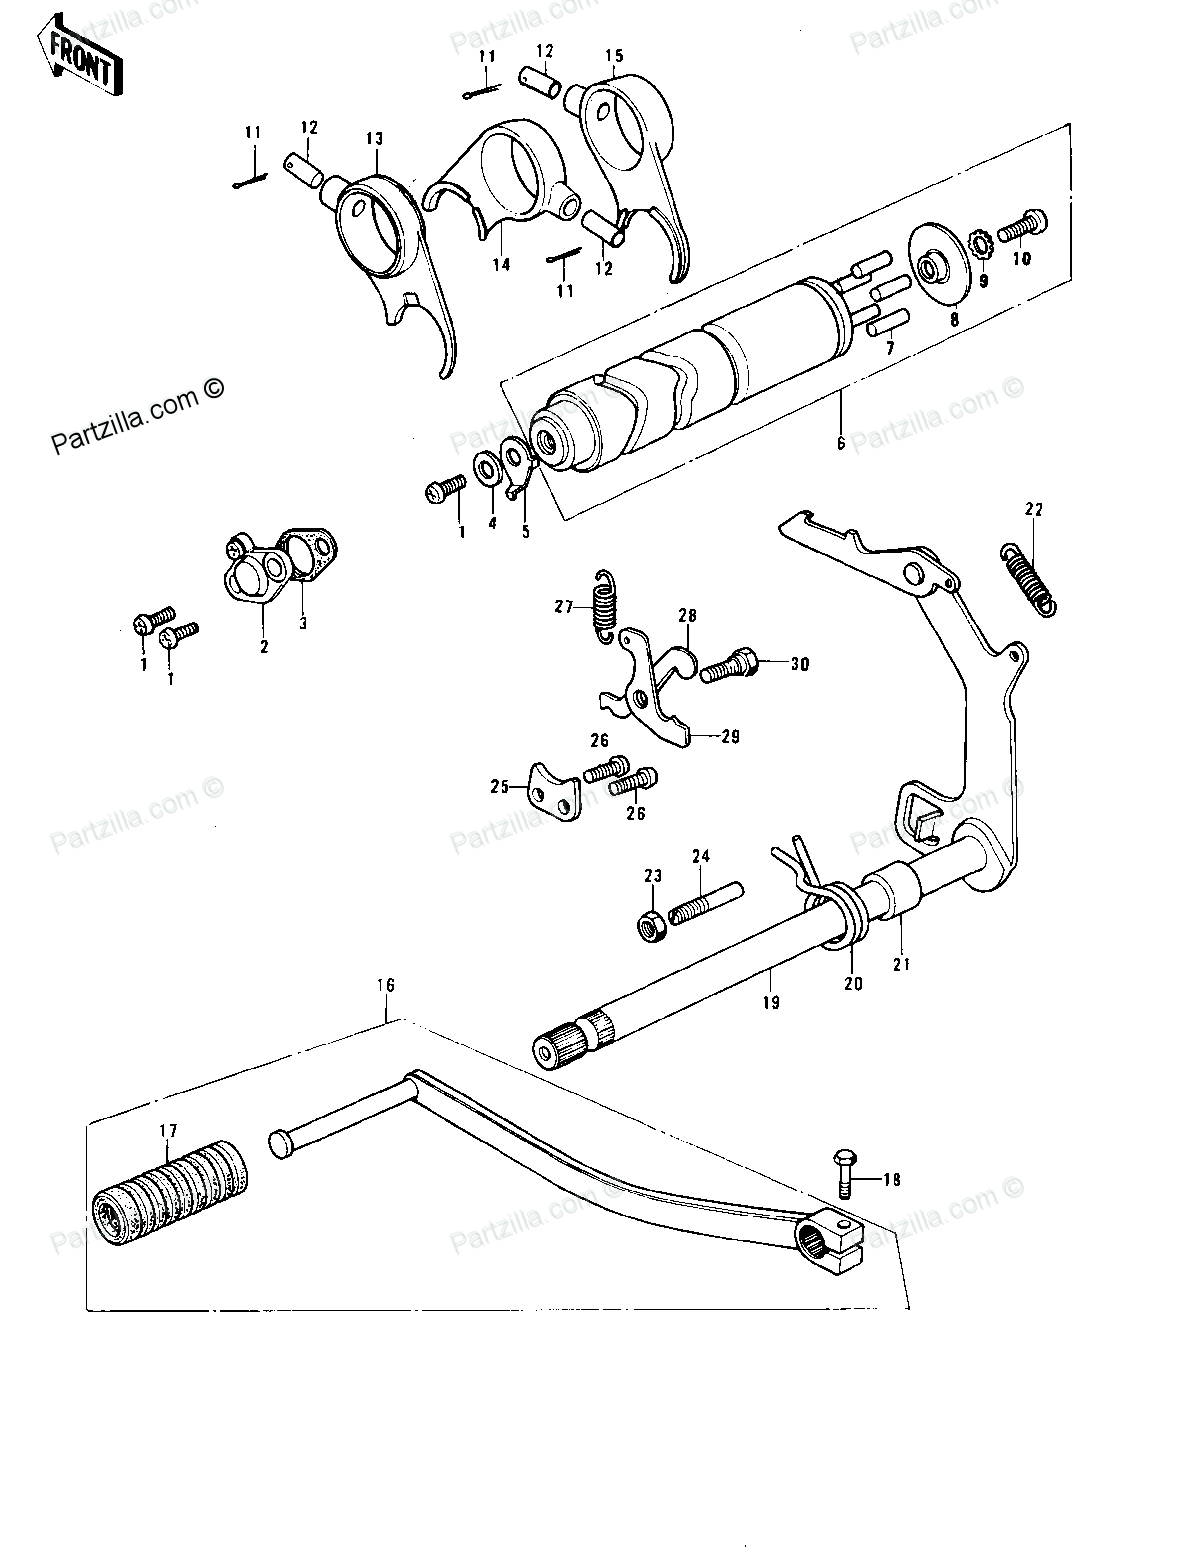 Diagram Of Kawasaki Motorcycle Parts Ke175 B3 Ke175